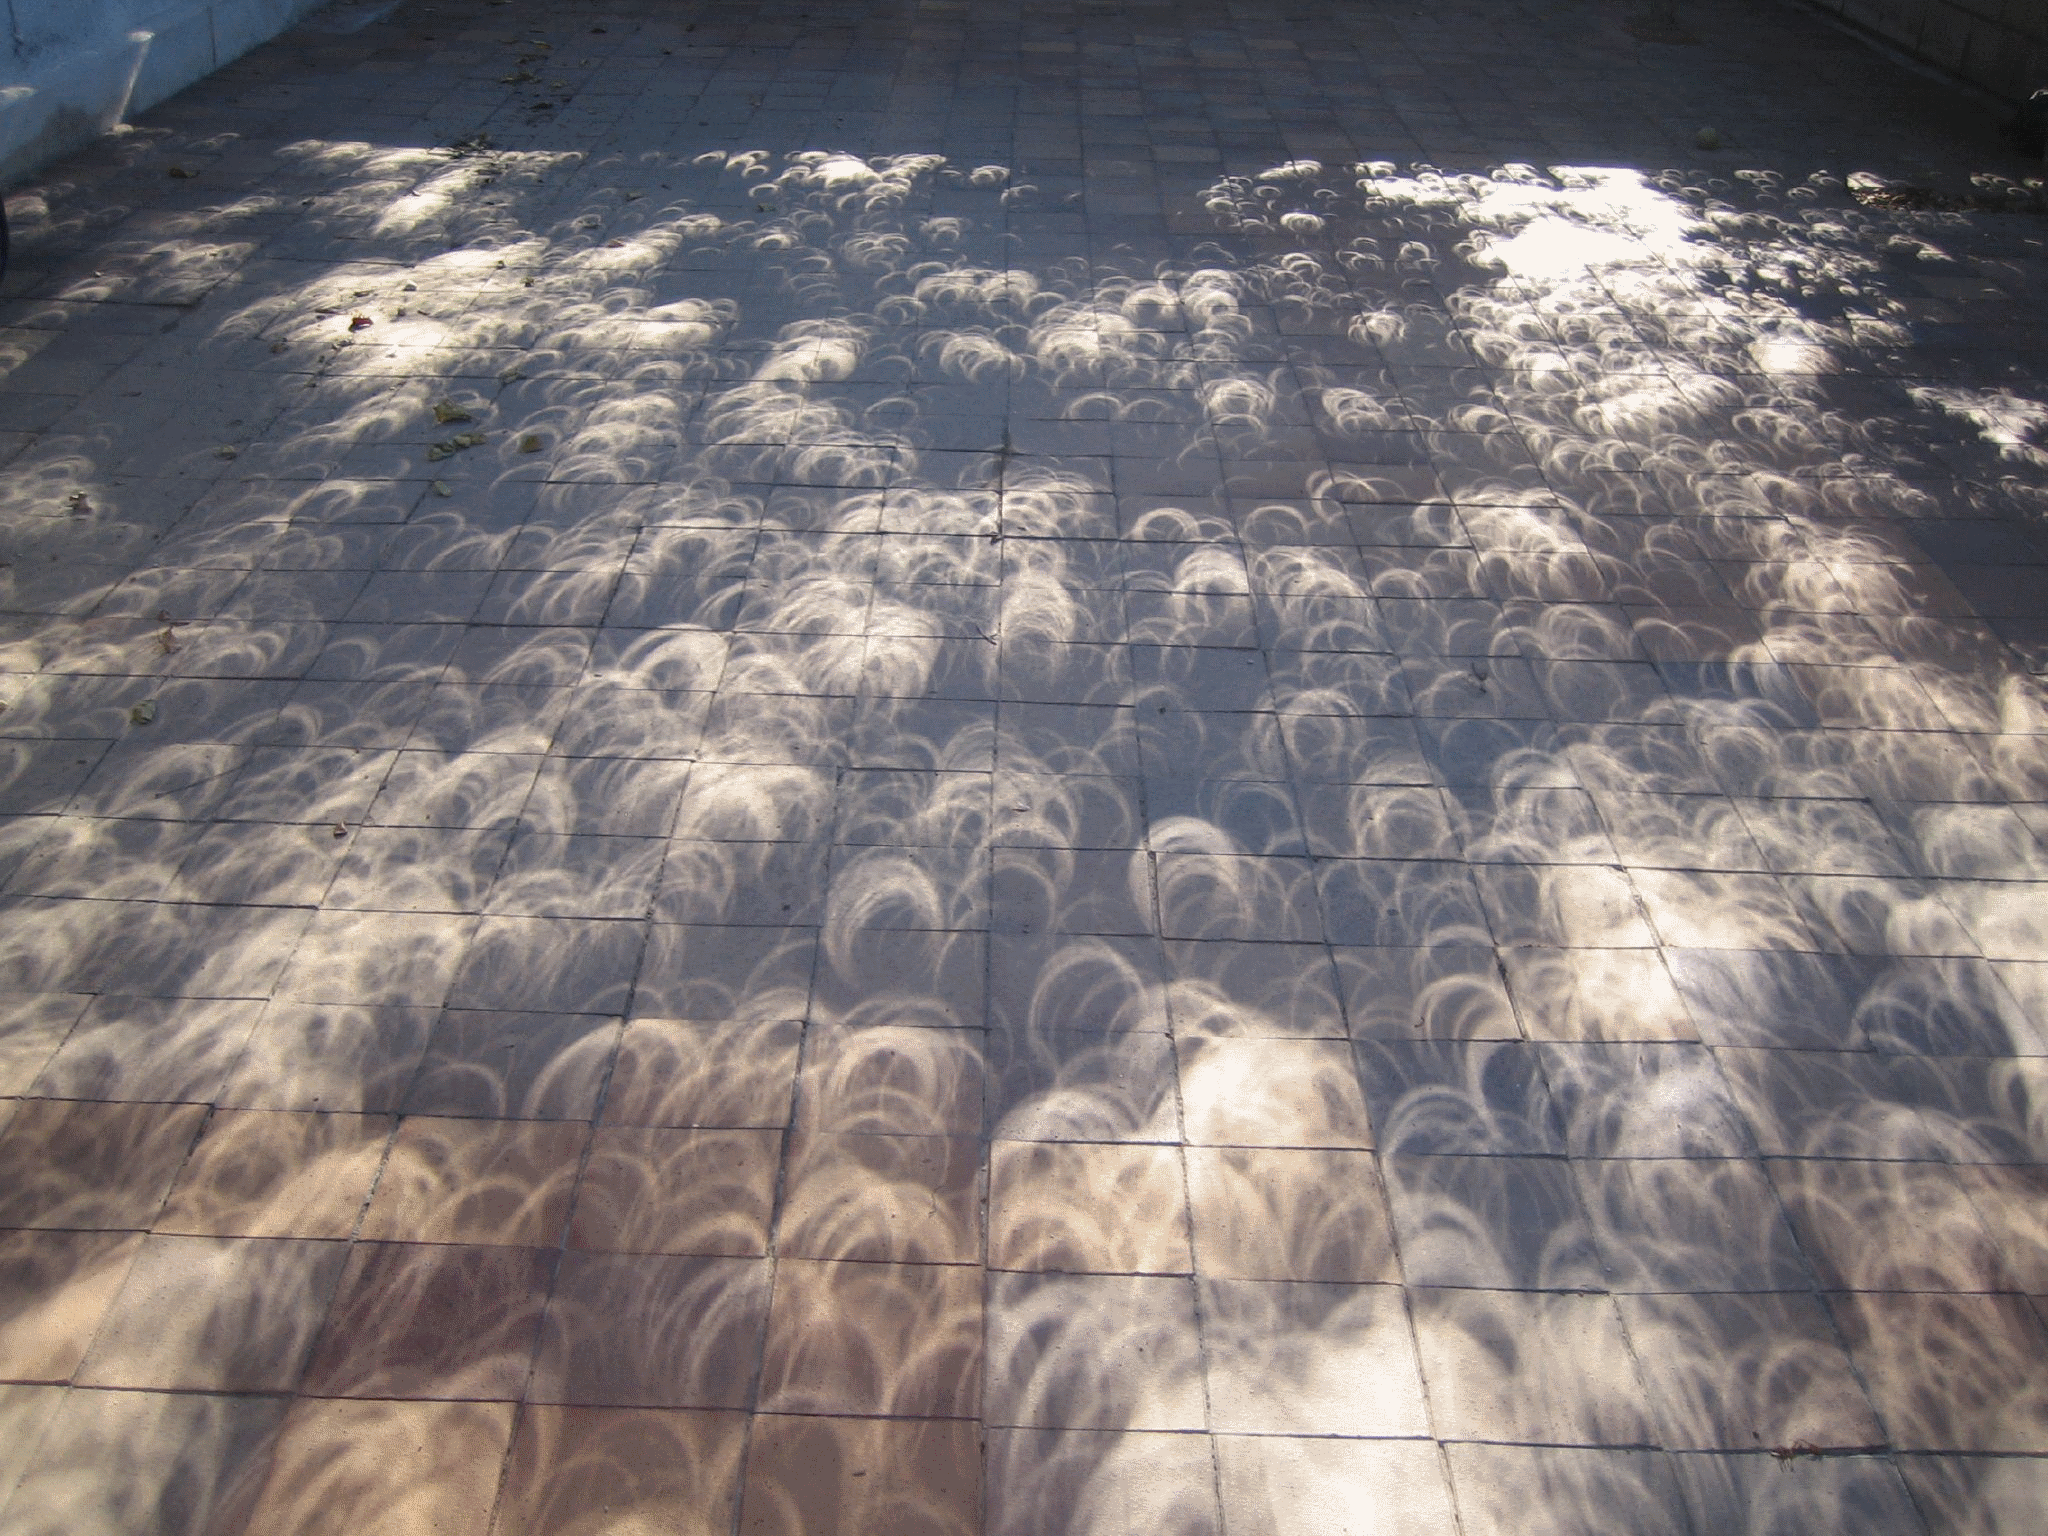 Shadows of an annular eclipse of October 3, 2005. By Nils van der Burg of Madrid, Spain. Via Wikimedia Commons.